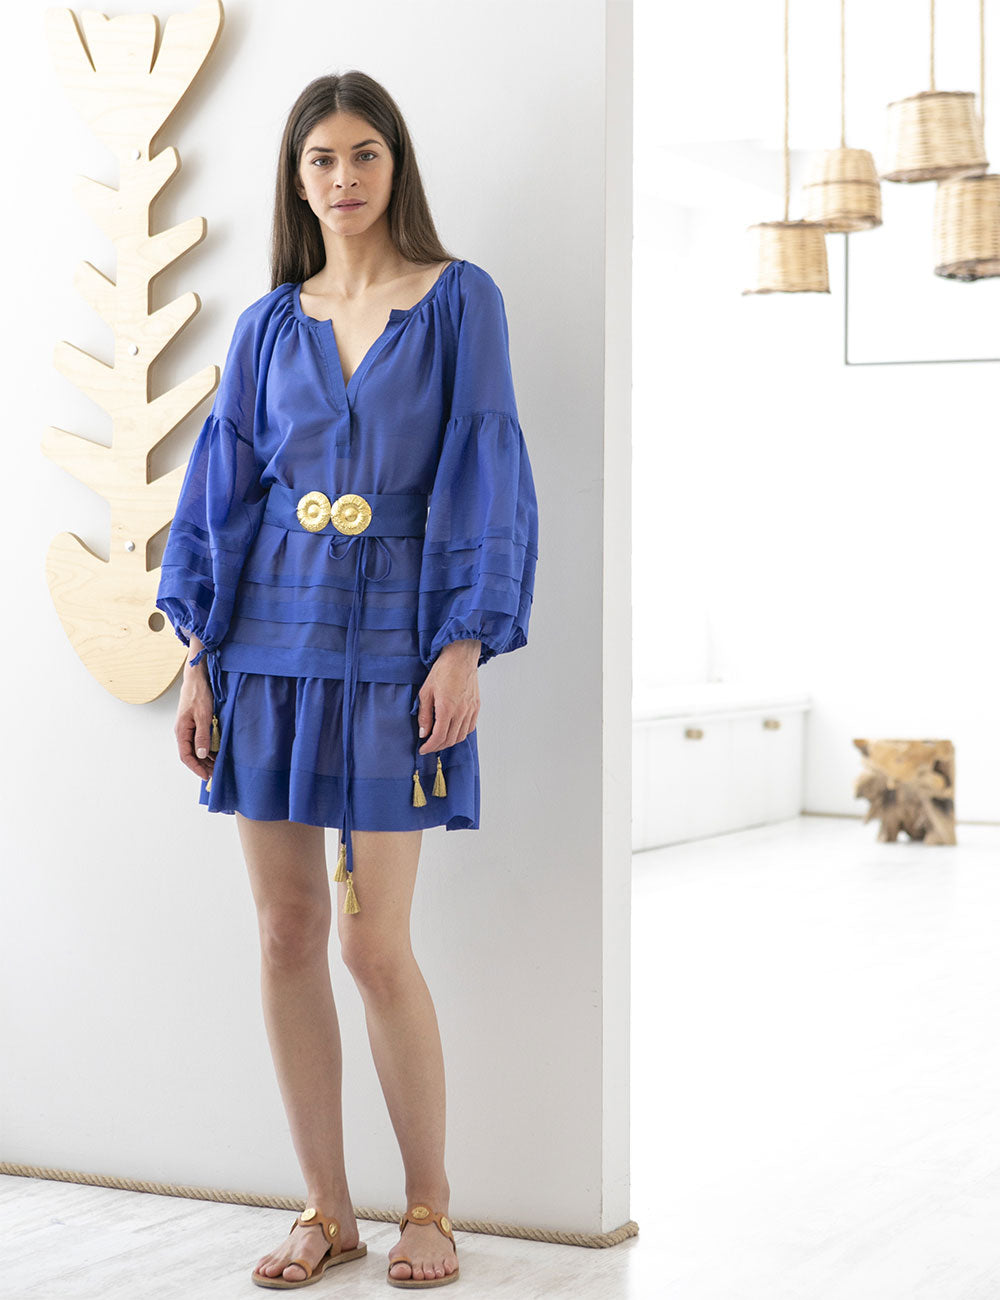 Mykonos Mini Kaftan with Golden Buckles and Tassels